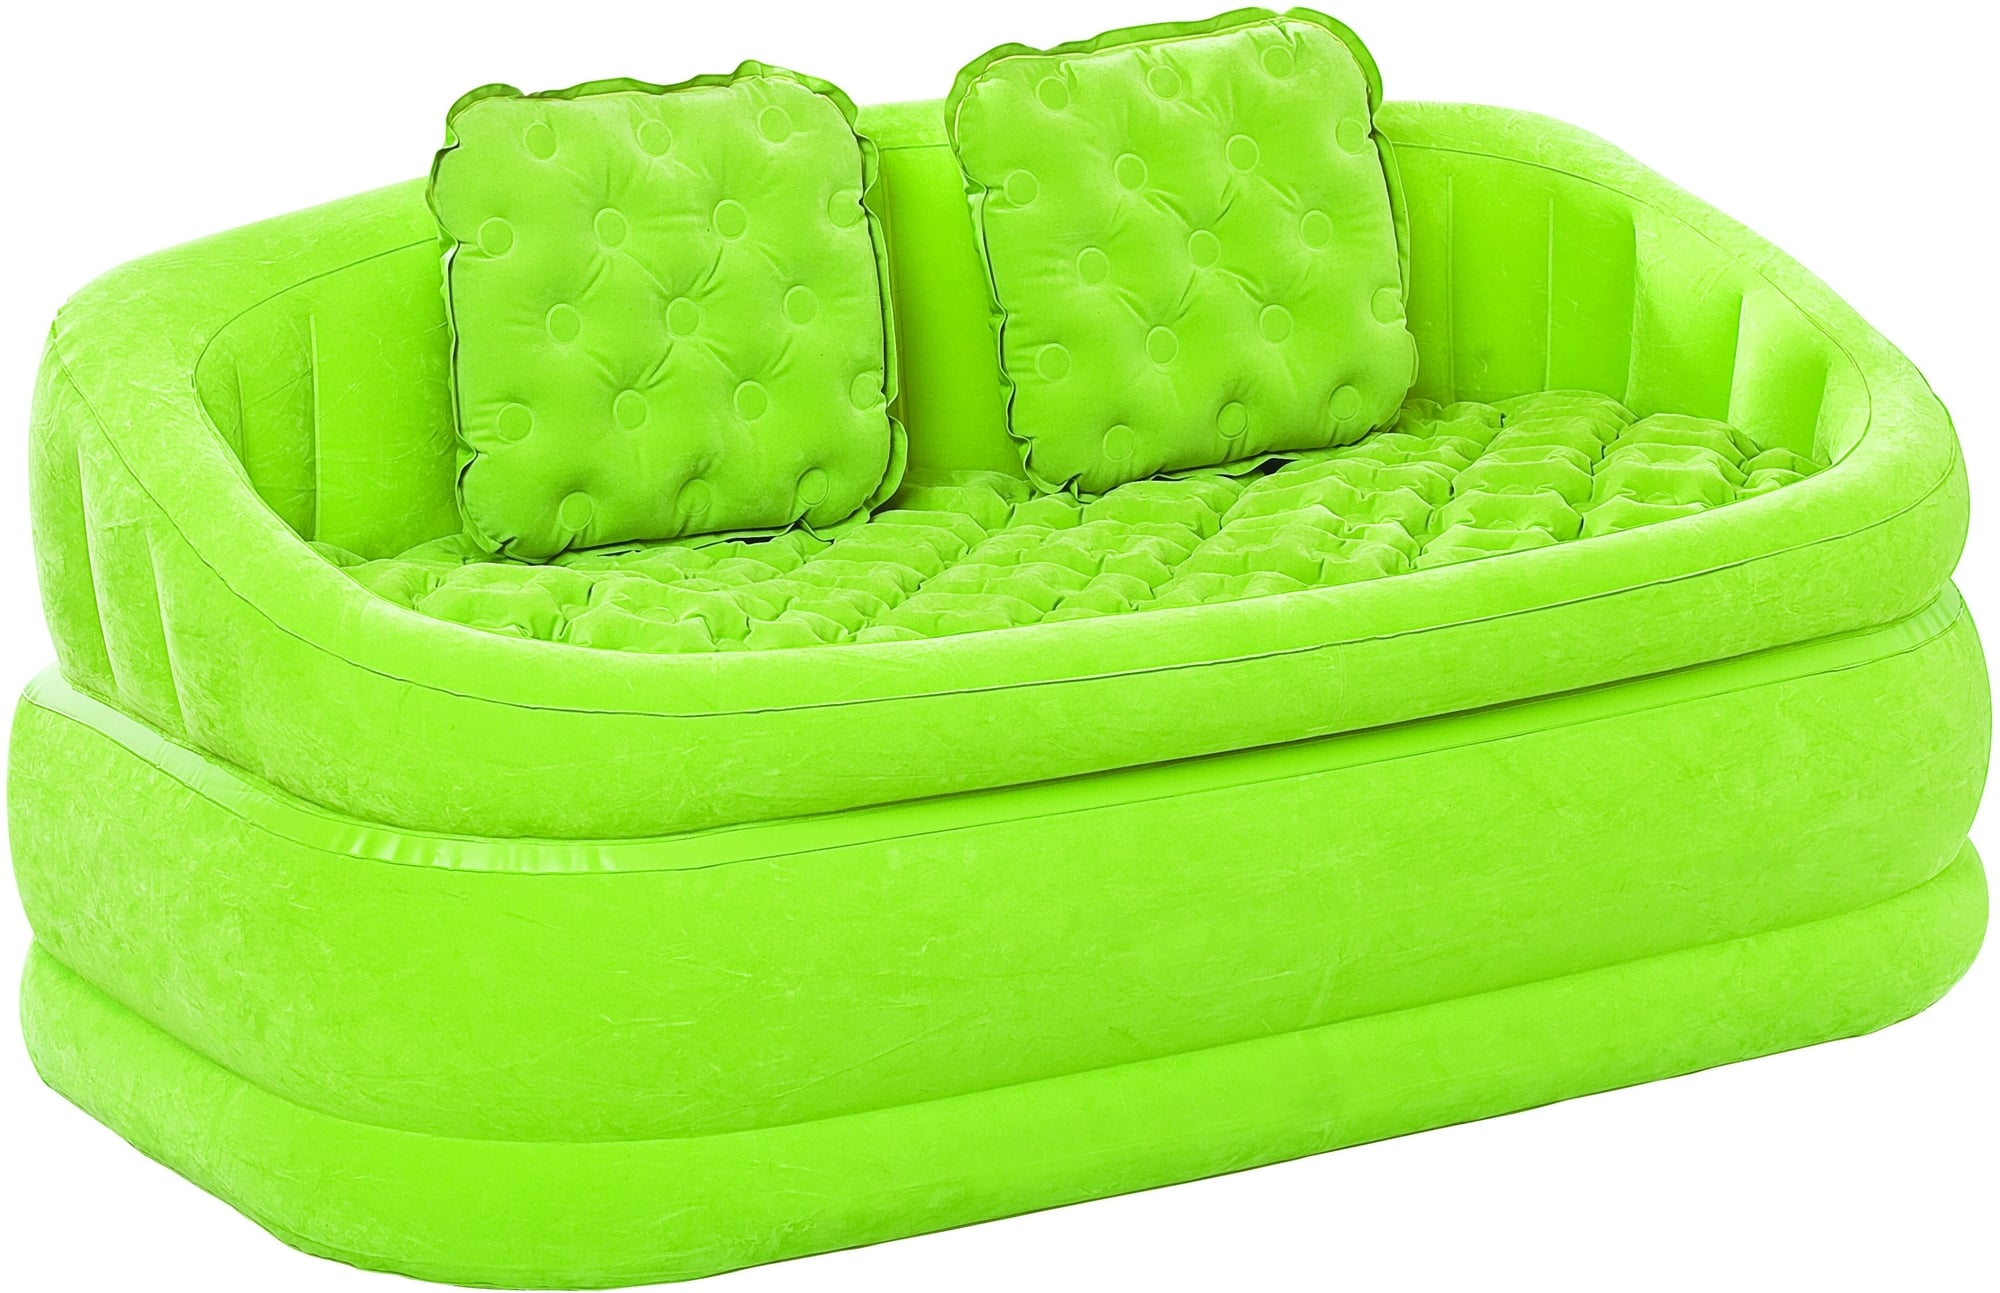 Seat Grün Intex Cafe Love Seat Pools Shop